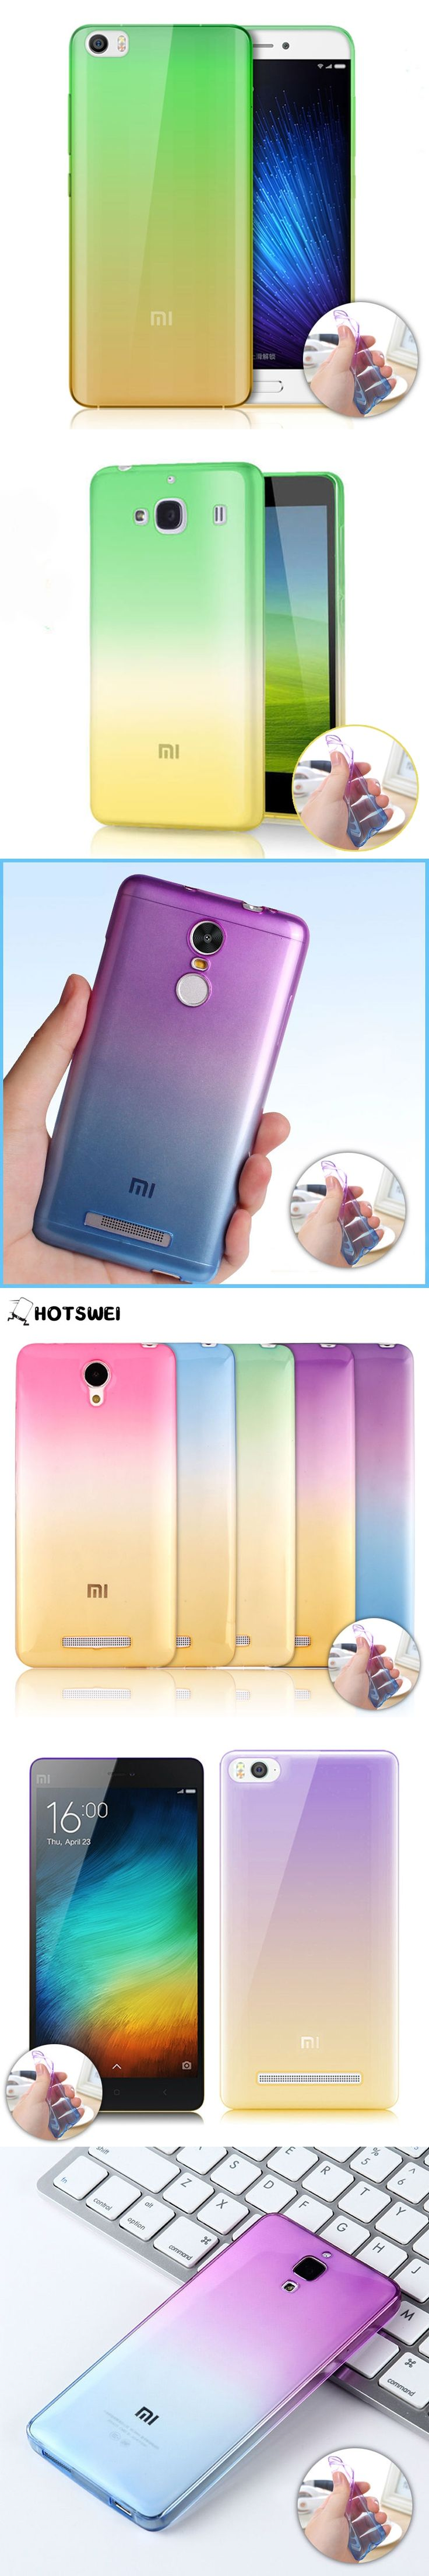 For Redmi Note 2 Note 3 Redmi 2 NEW Gradient Colors Soft TPU Case for Xiaomi Mi4 MI4C Mi4i Mi3 Mi5 Ultra Thin 0.3mm Phone Cover